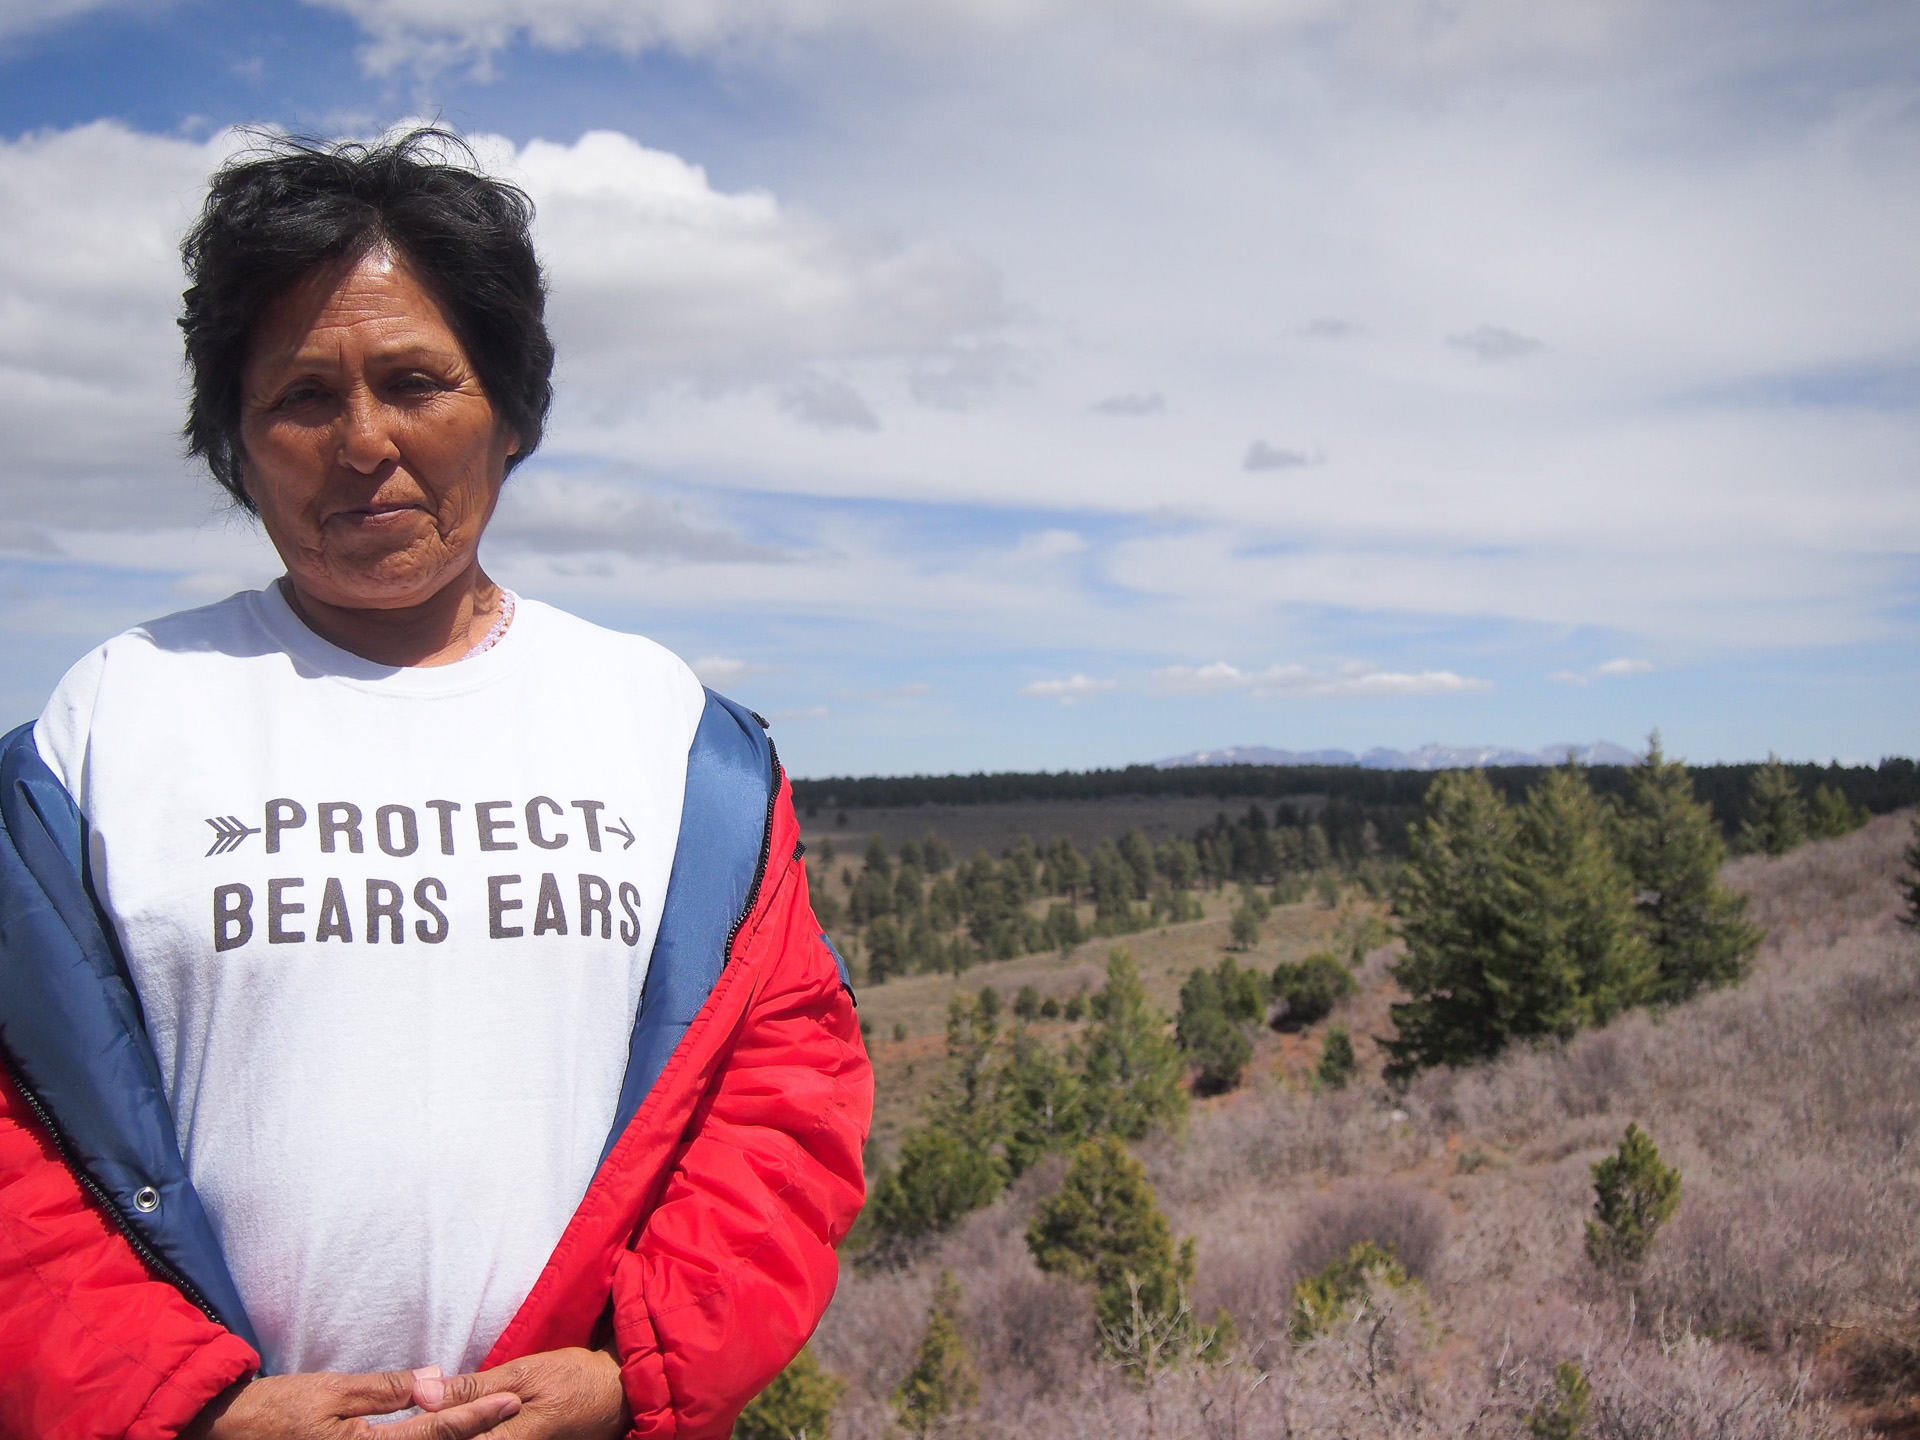 protect-bears-ears-var-25